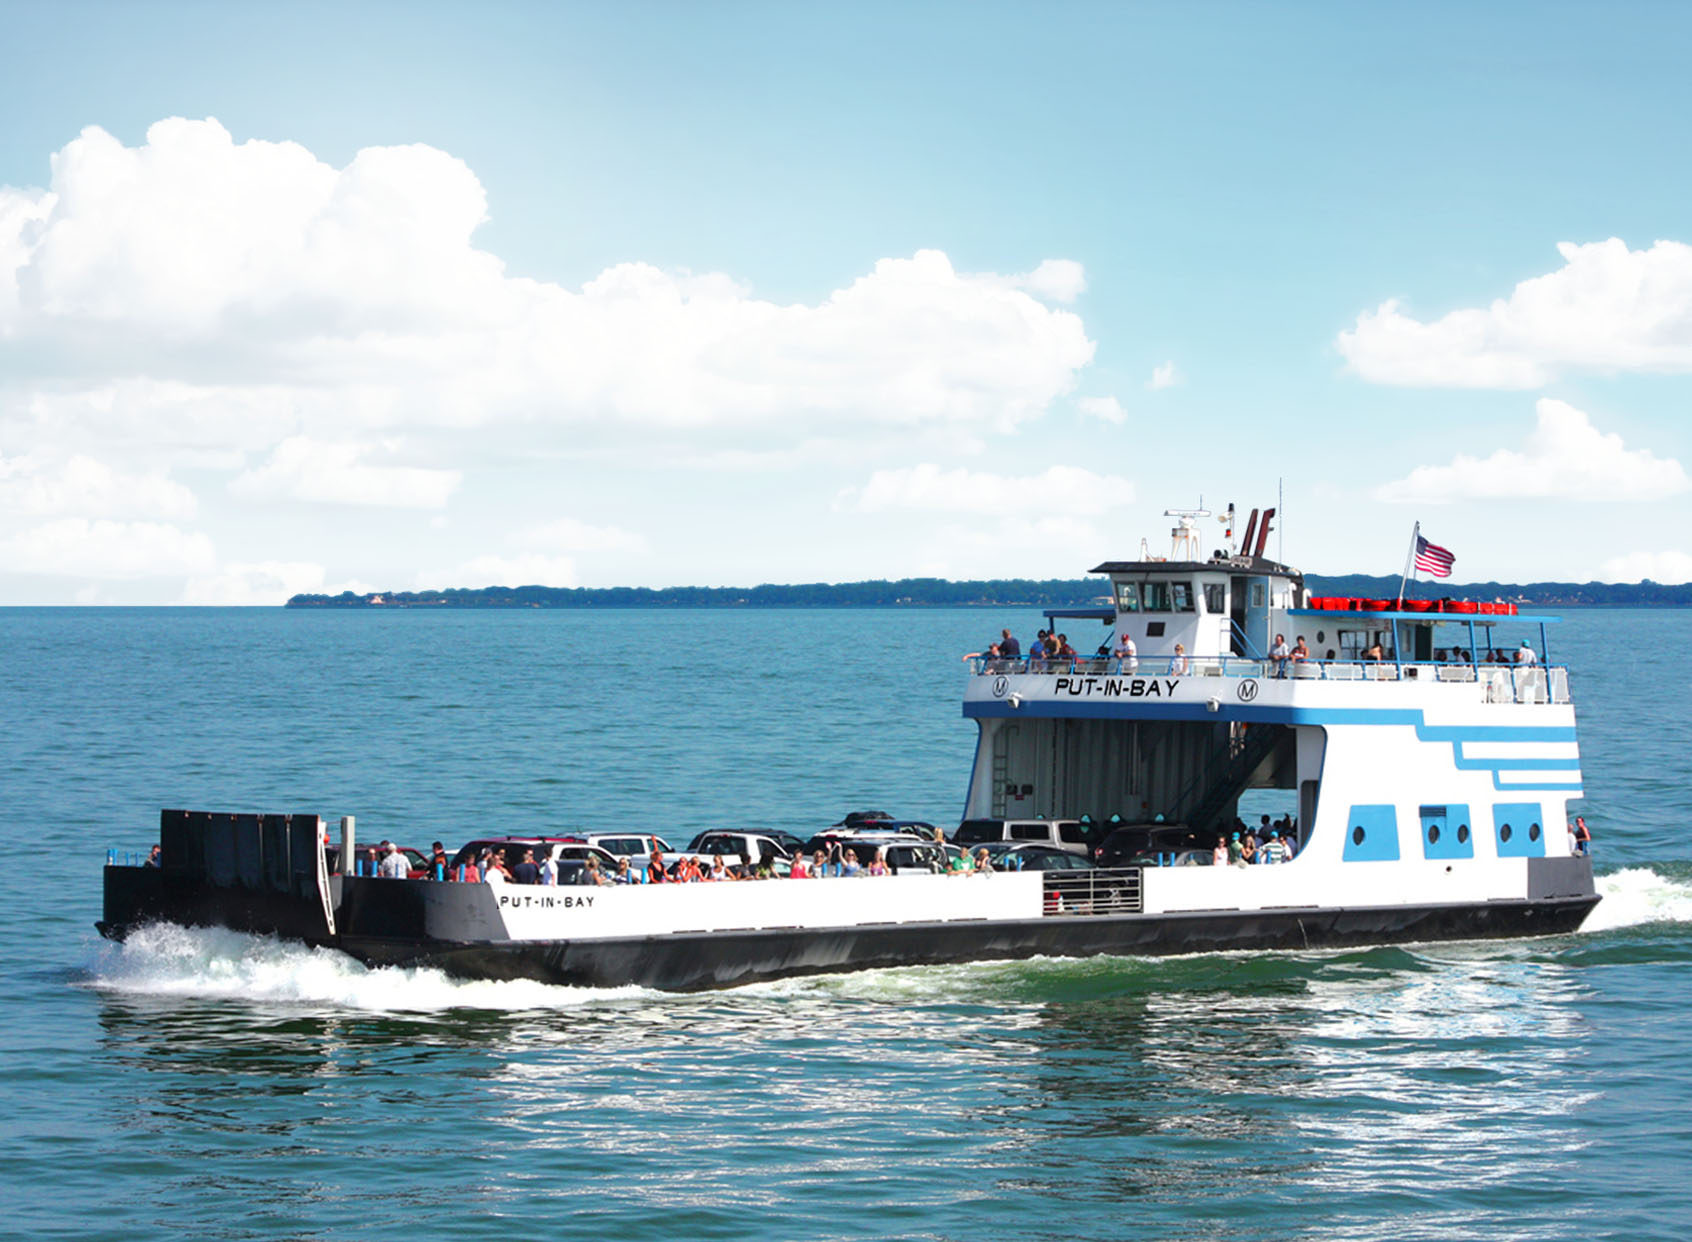 Miller Ferry | Lowest Fares to Put-in-Bay & Middle Bass Island, Ohio